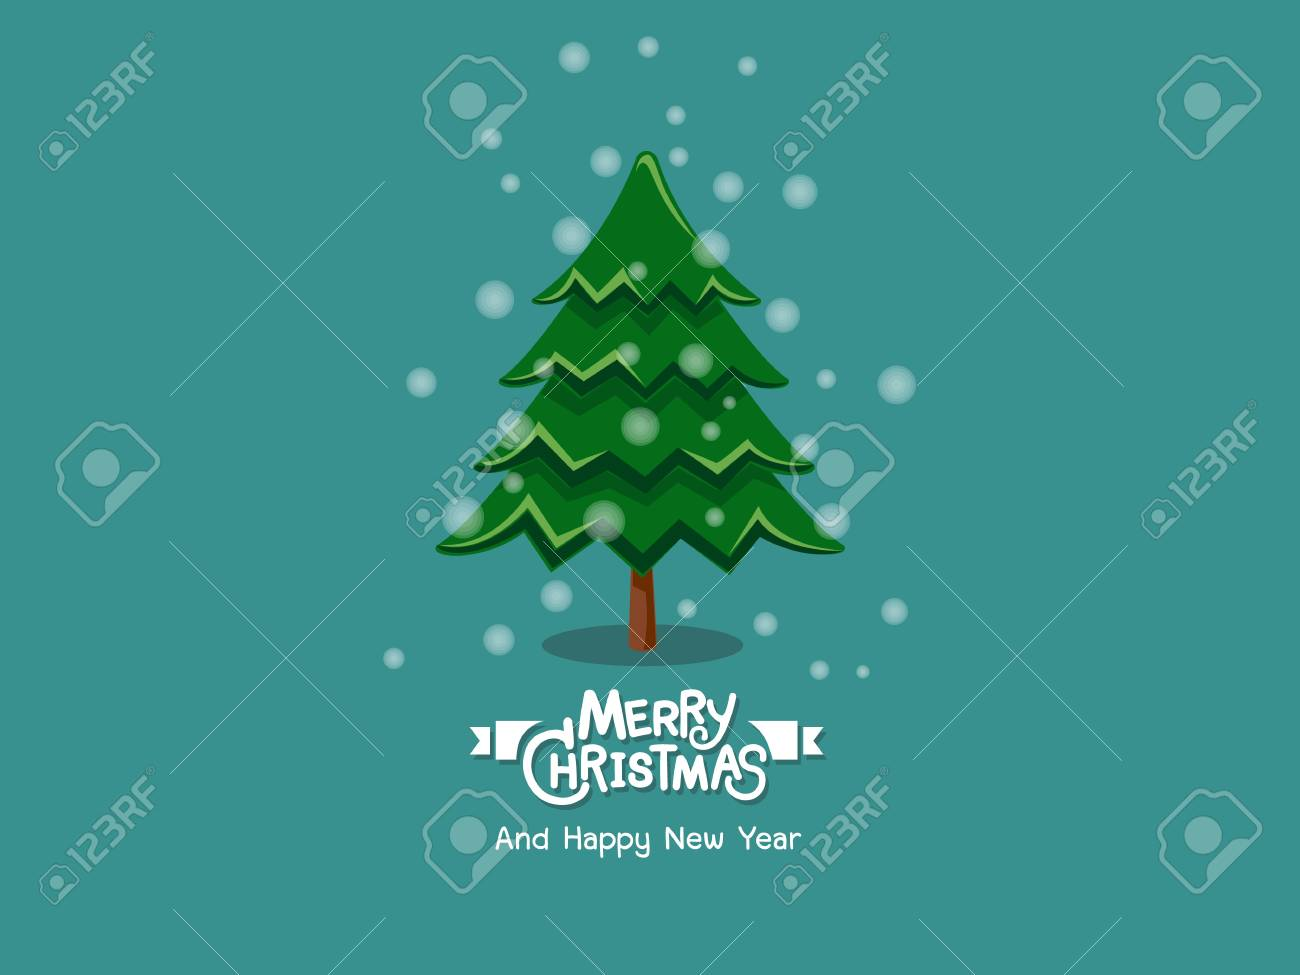 merry christmas and happy new year christmas tree for decorative element on holiday poster